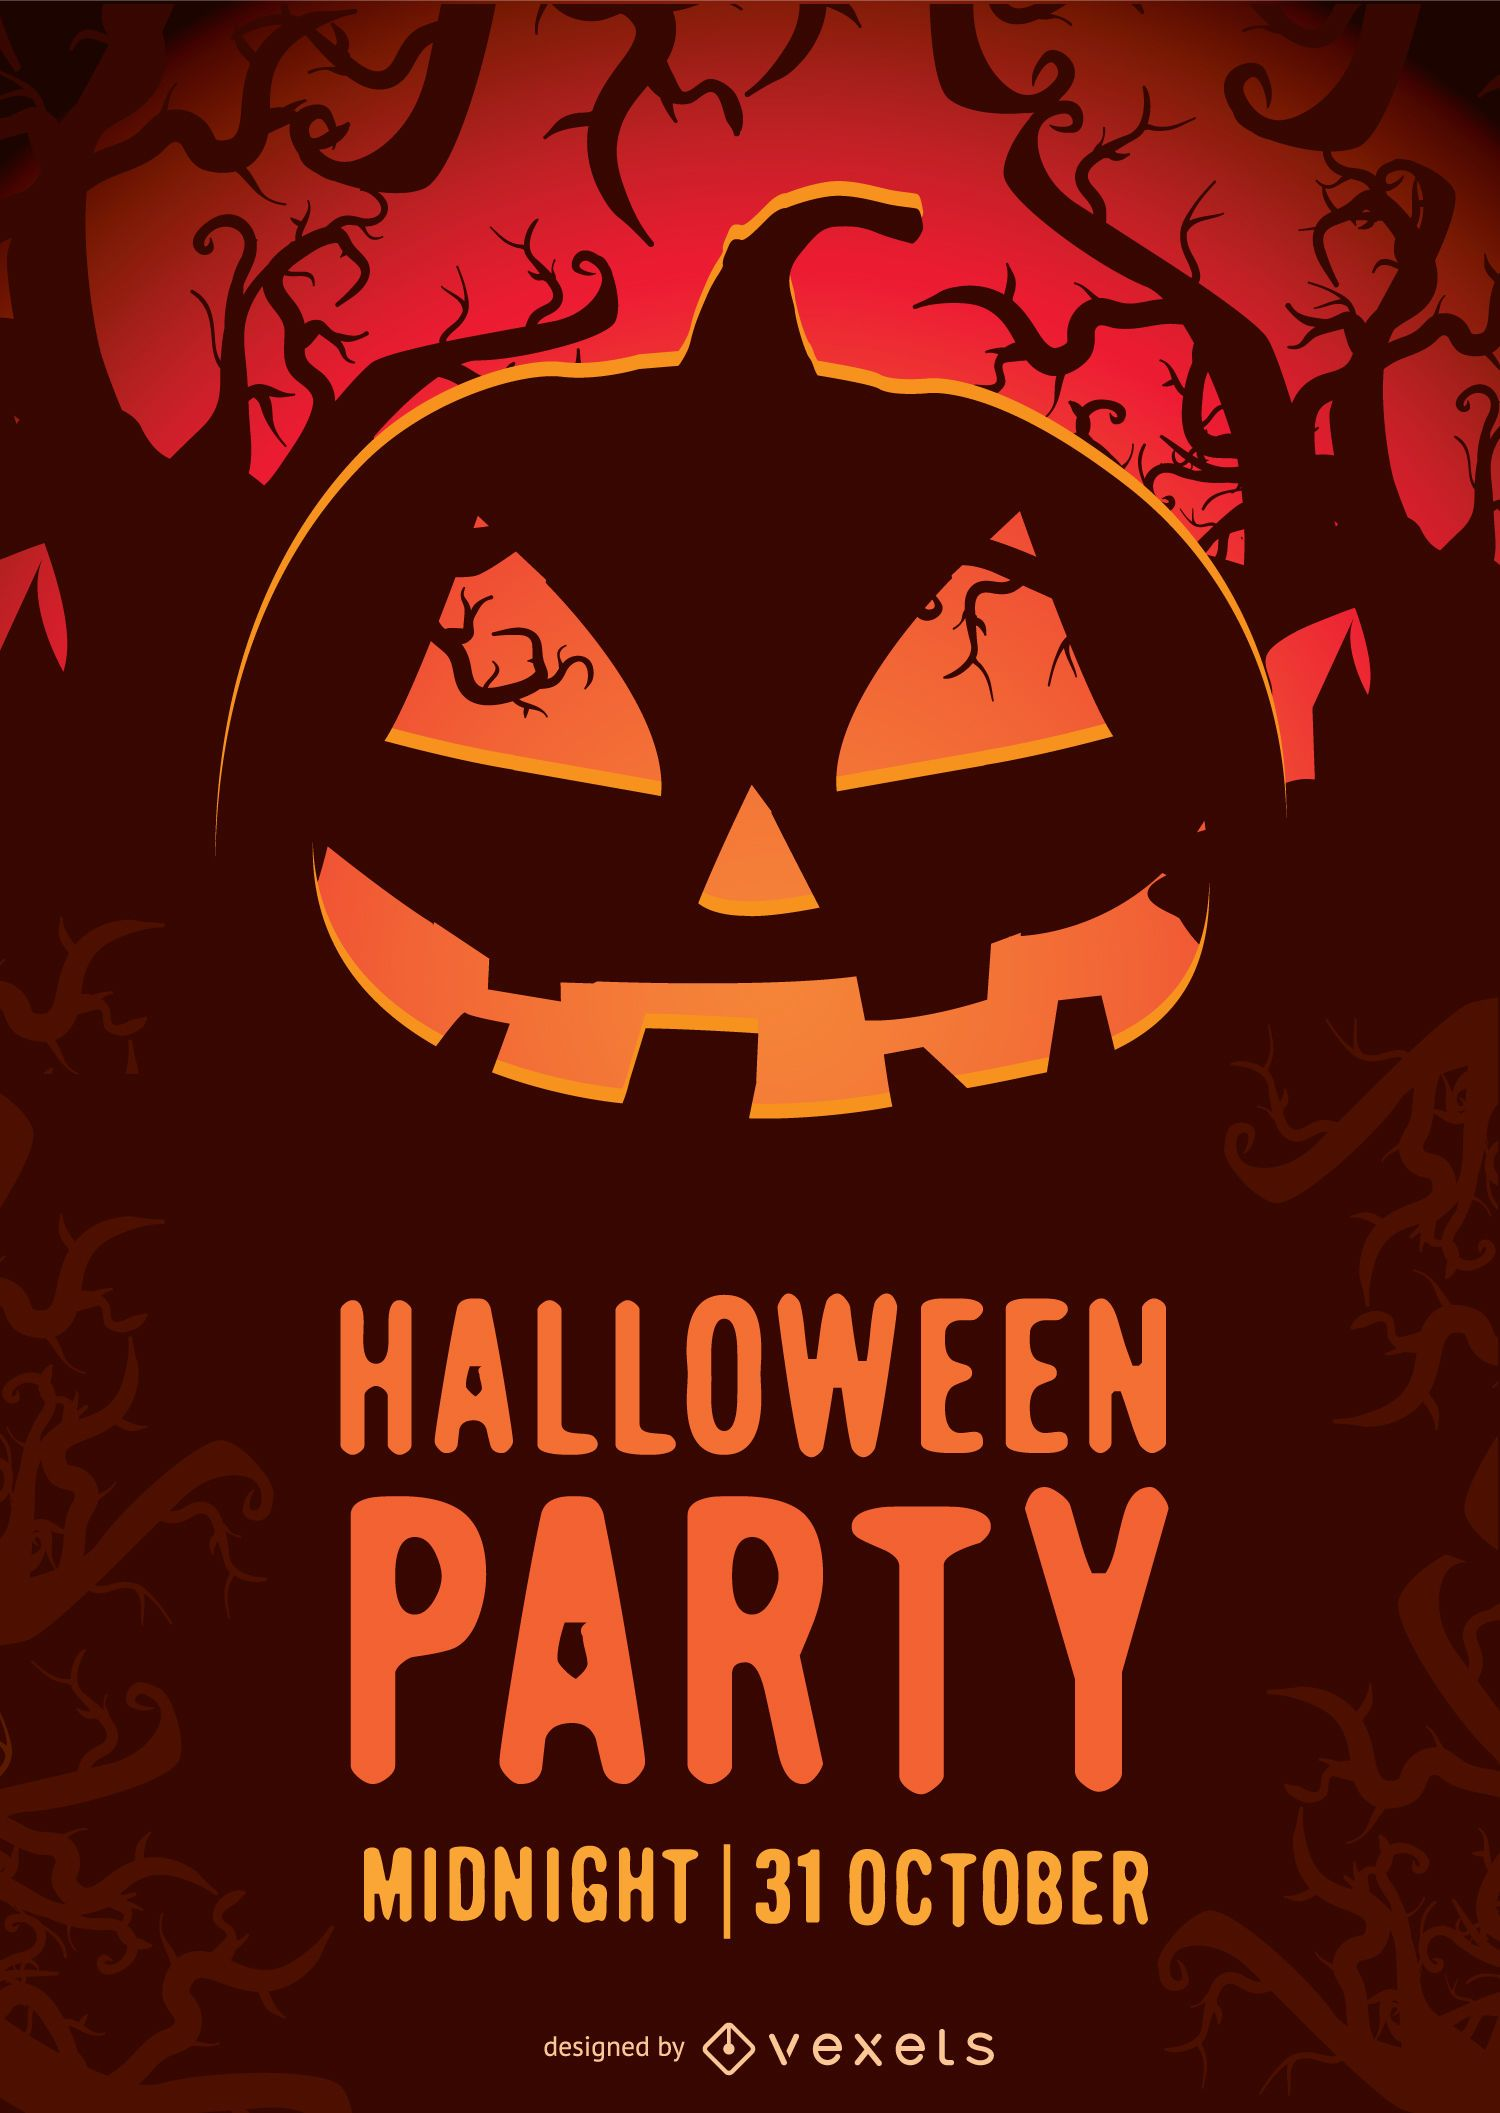 halloween party poster vector download rh vexels com halloween party poster templates free halloween party poster editable